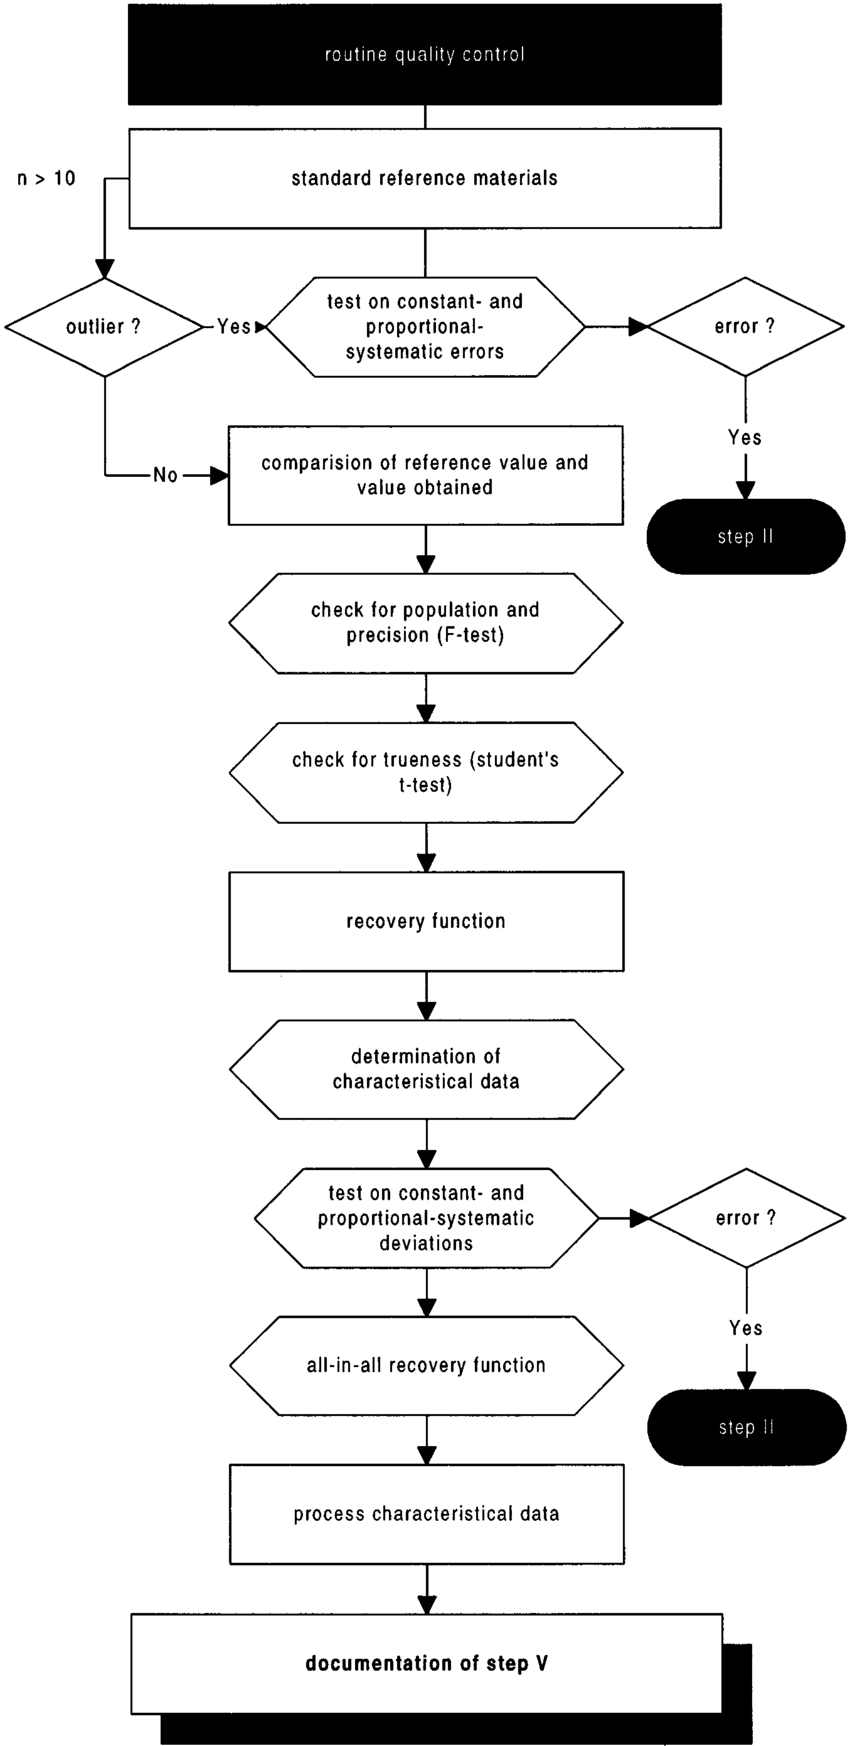 hight resolution of flow chart of step v routine quality control with standard reference materials